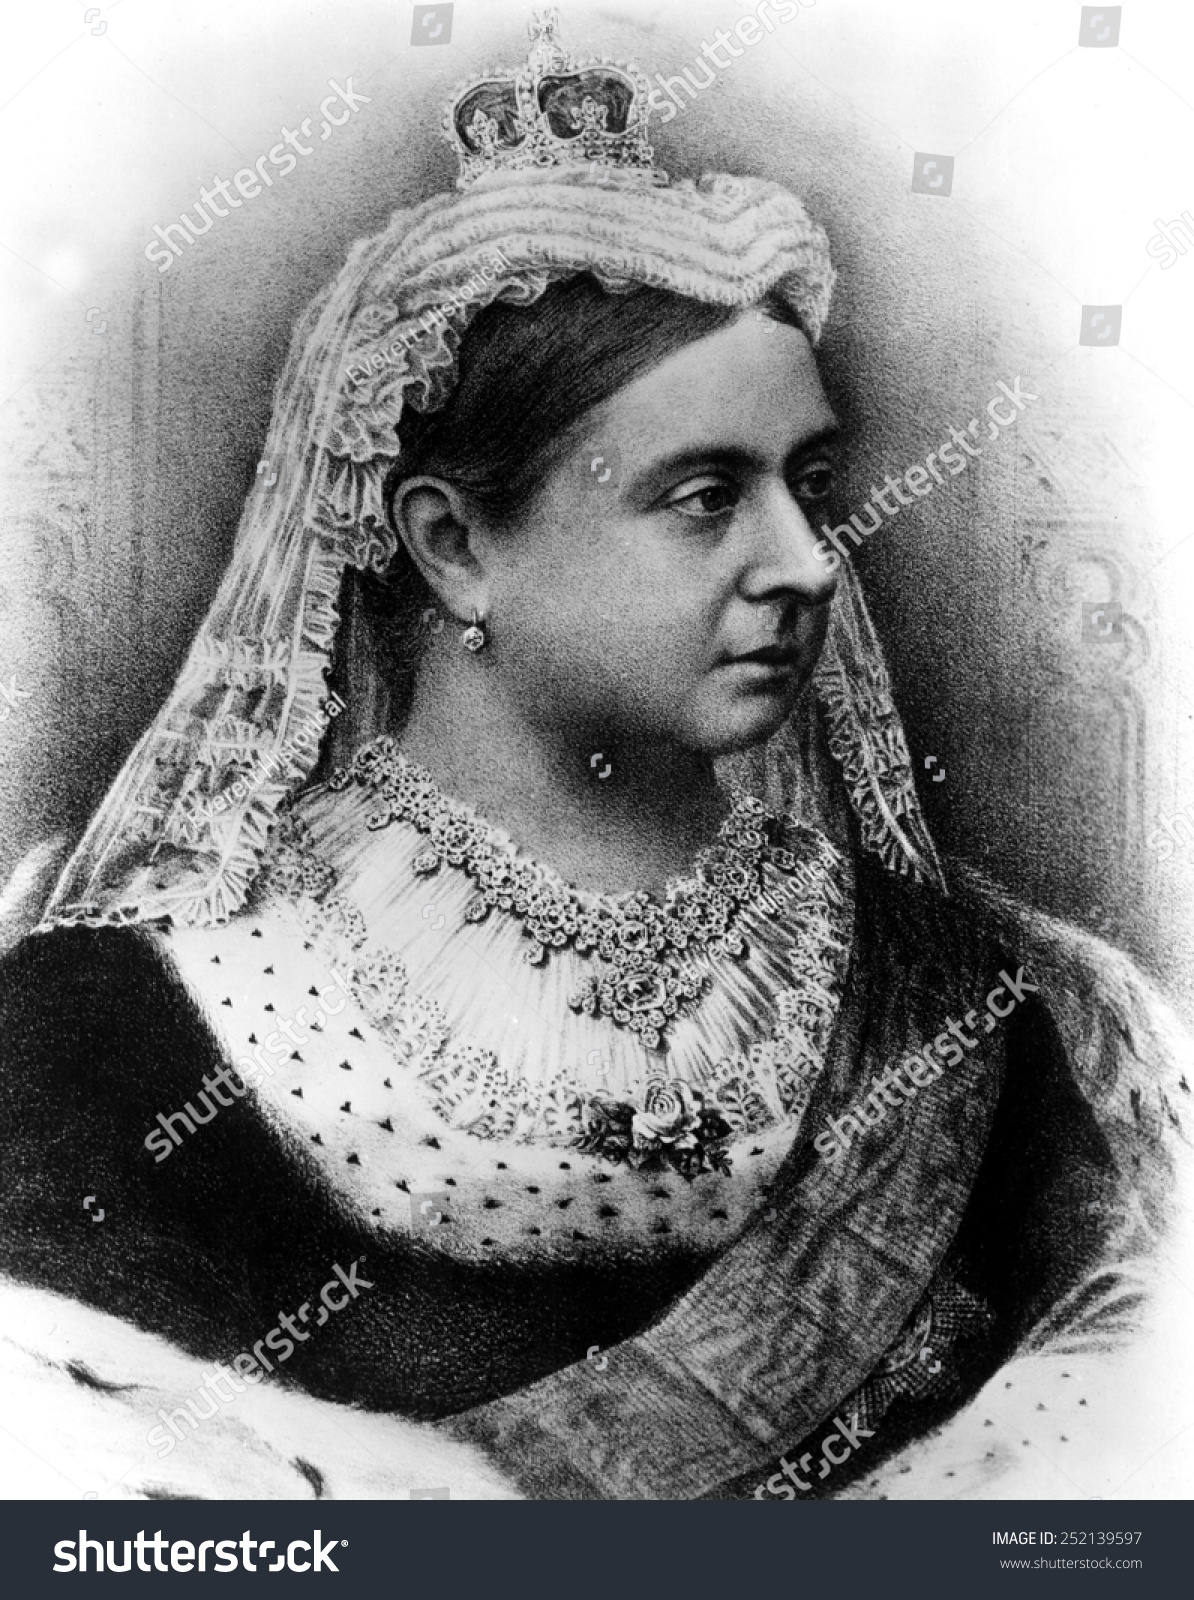 5 Things You May Not Know About Queen Victoria